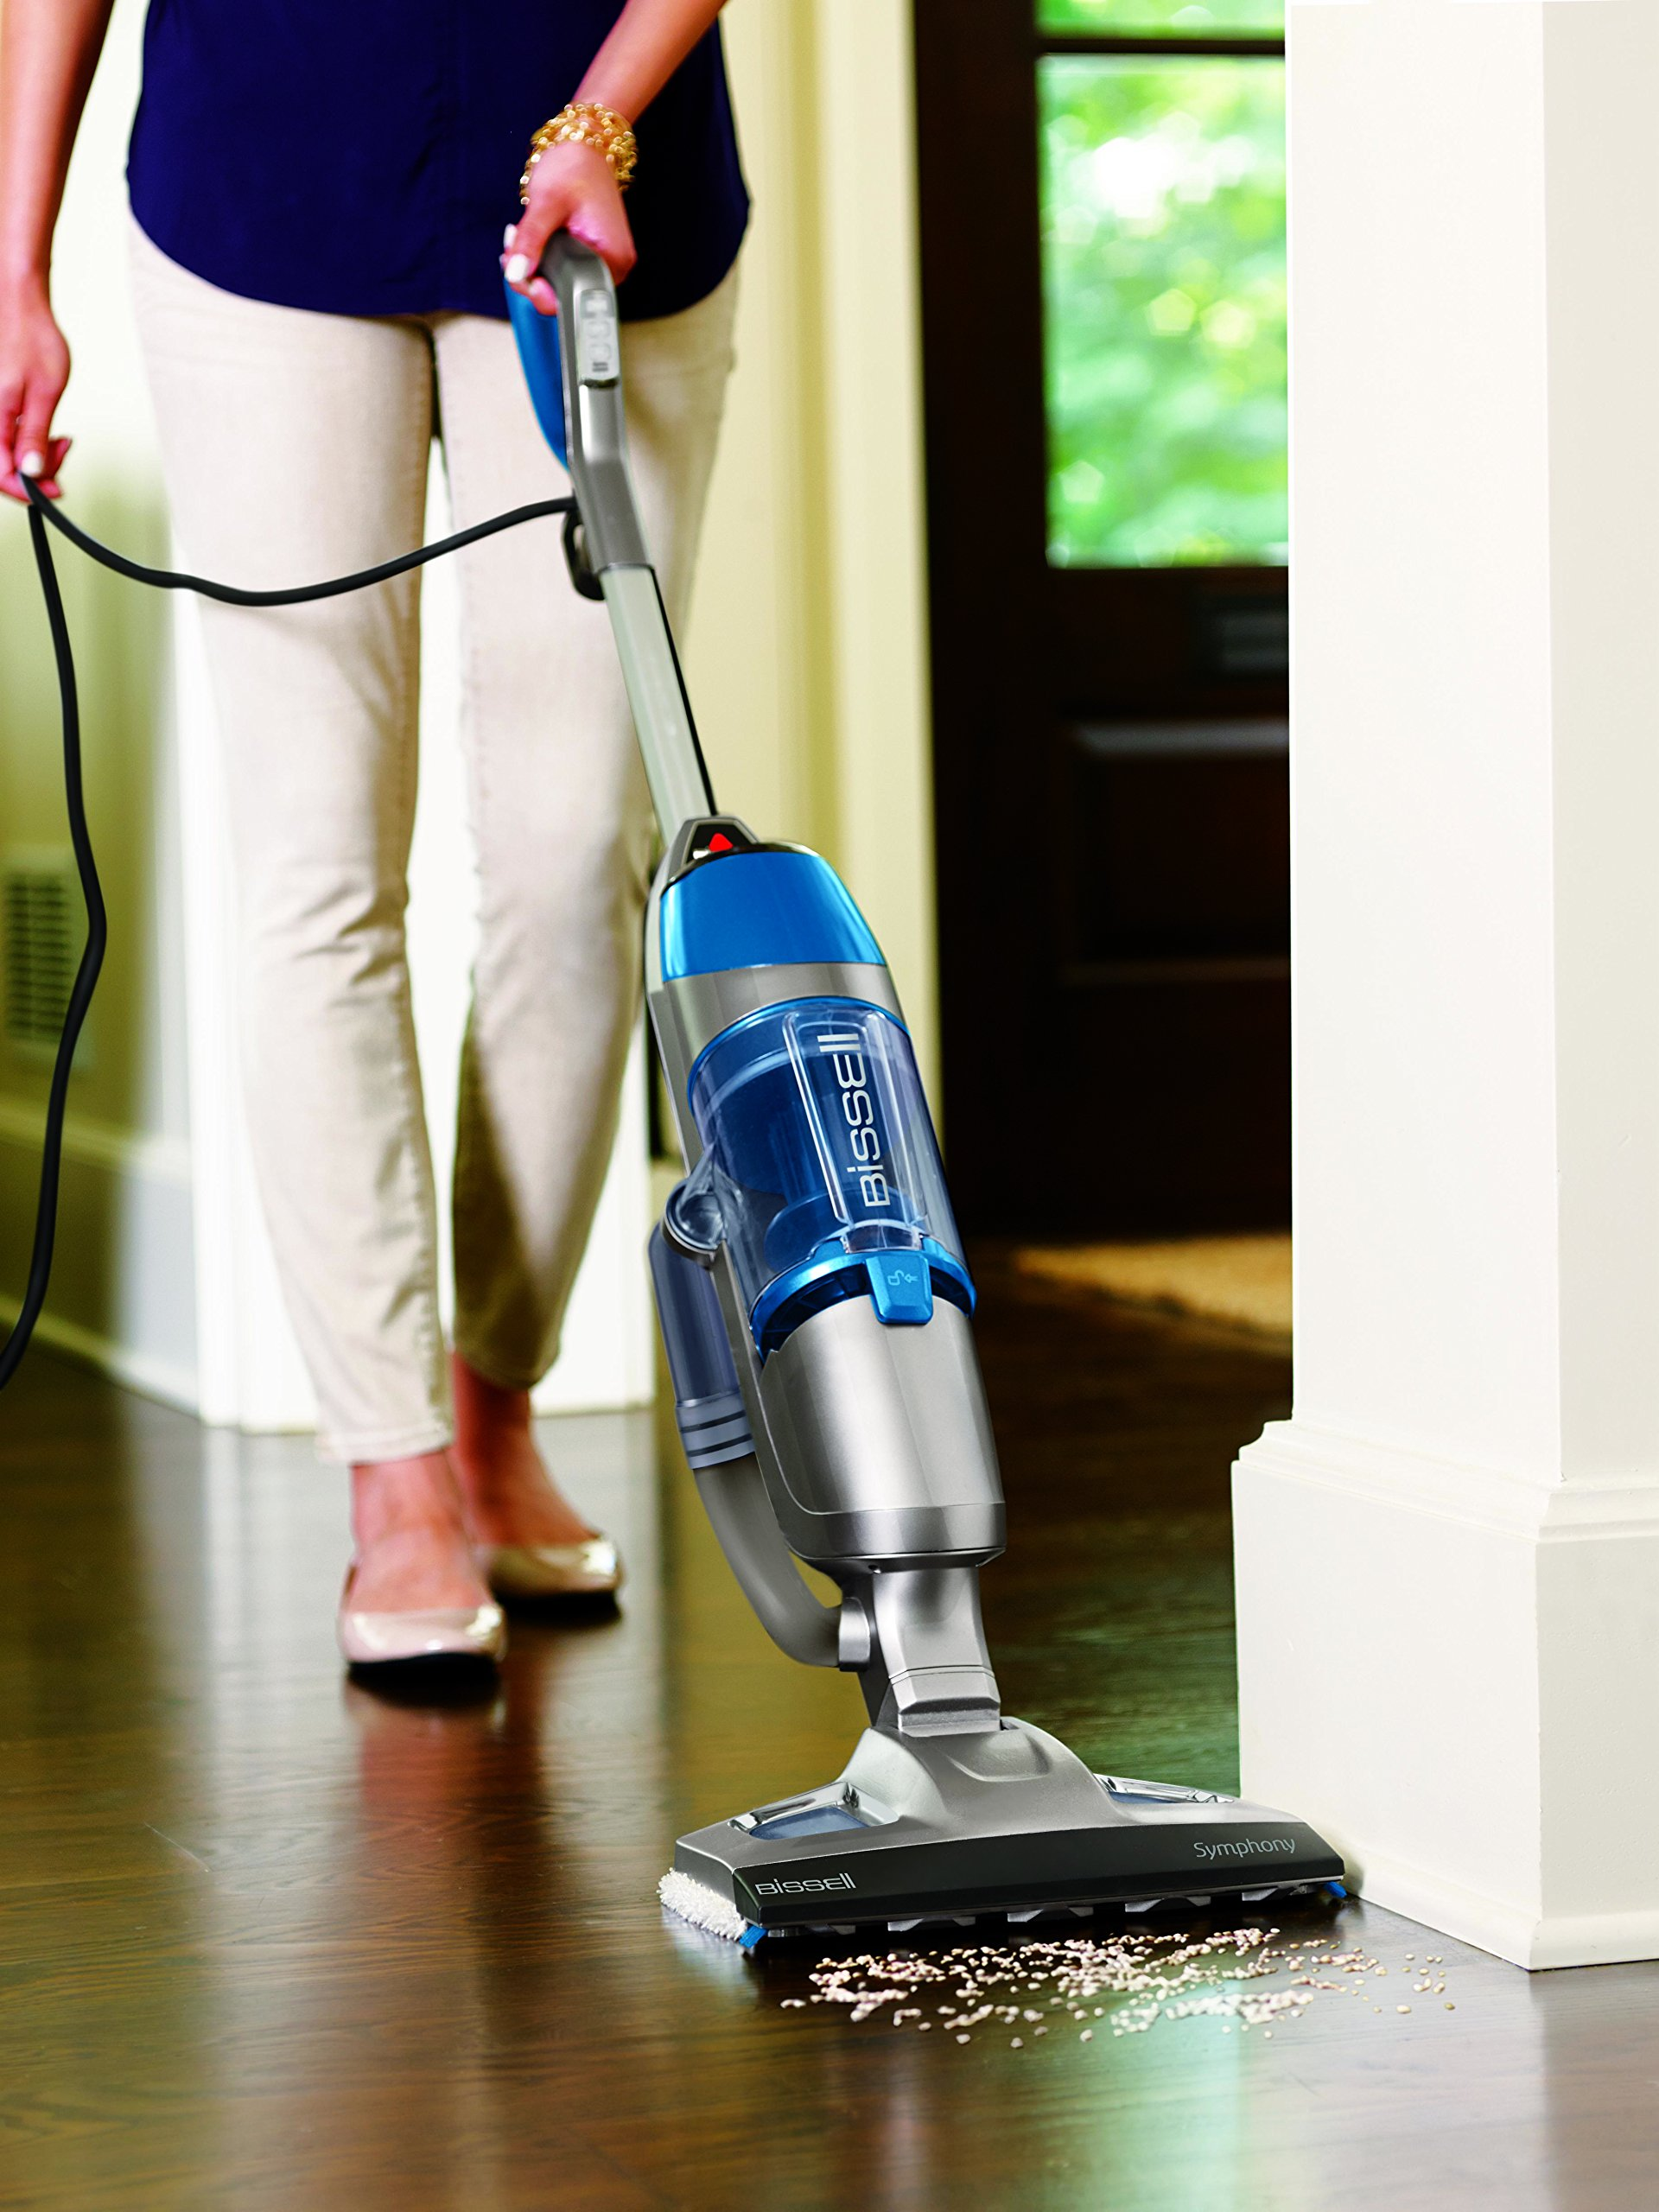 Bissell Symphony Steam Mop and Steam Vacuum for Hardwood and Tile Floors, 4 Mop Pads Included, 1132A by Bissell (Image #7)